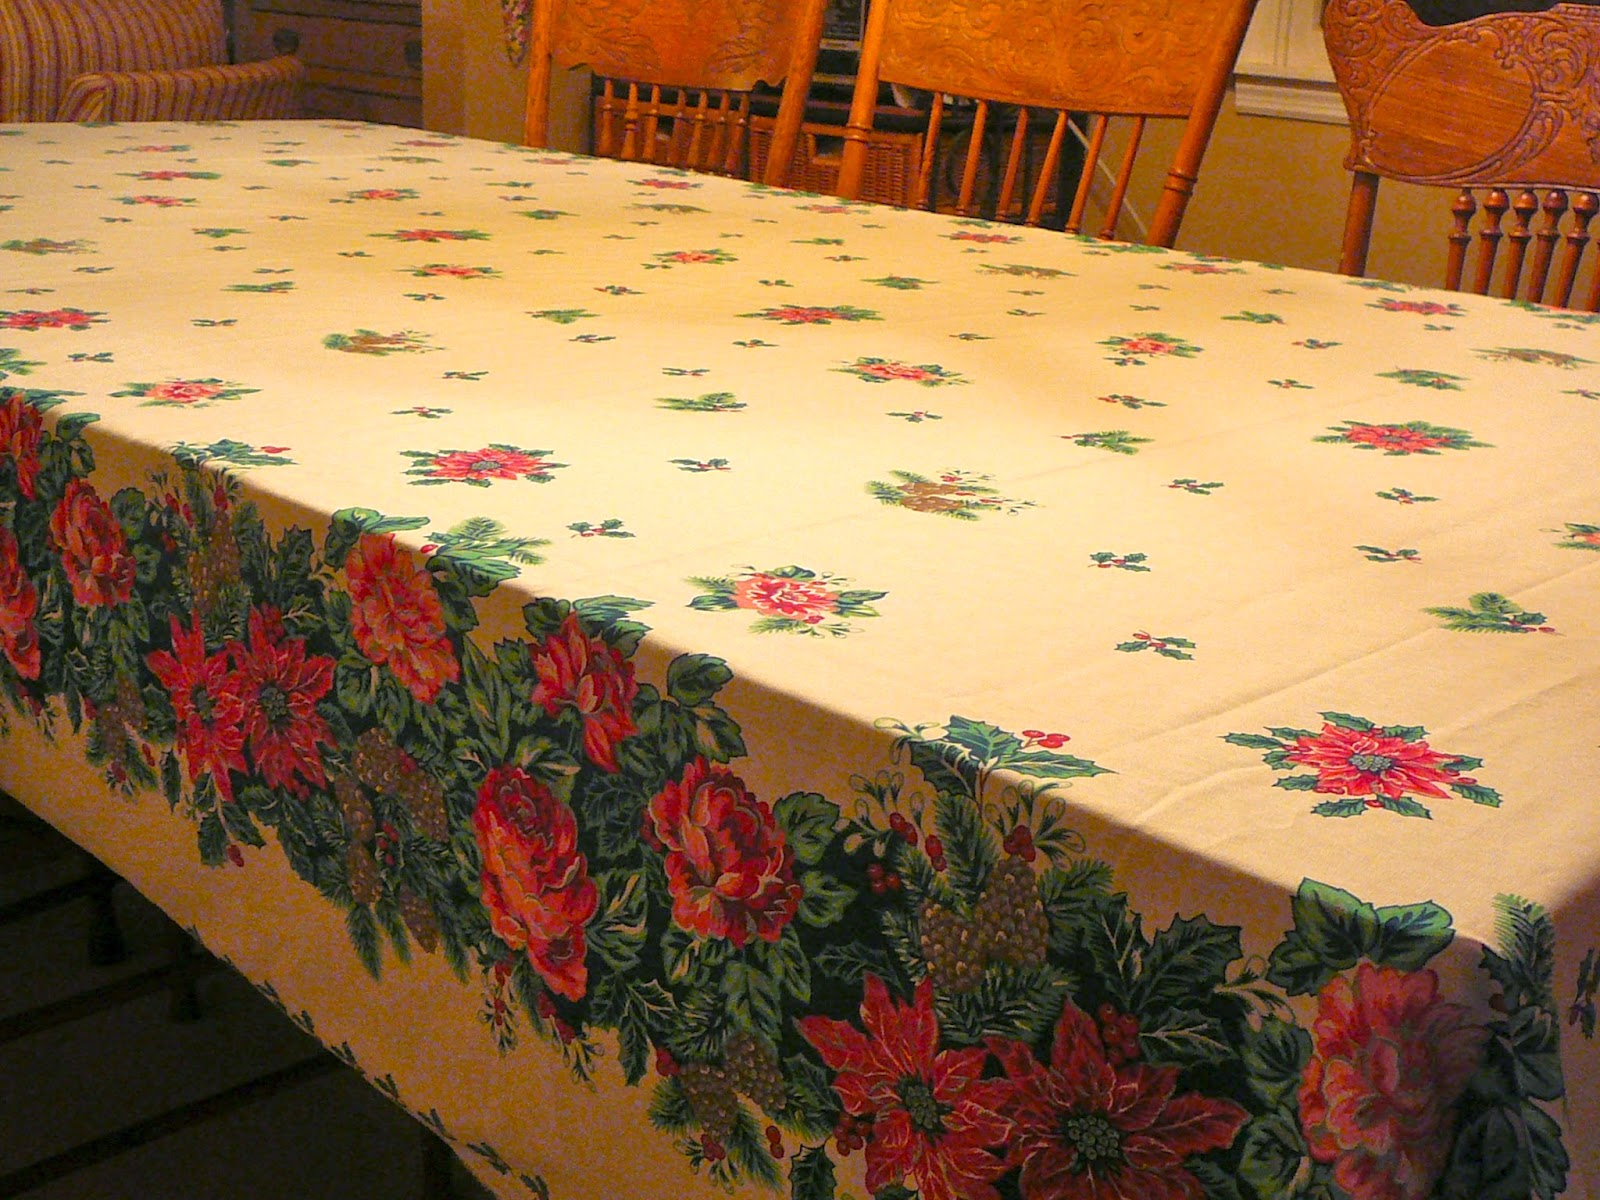 Christmas Tablecloths Australia Excellent Tablecloths Vinyl Oblong Tablecloth Vinyl Tablecloths